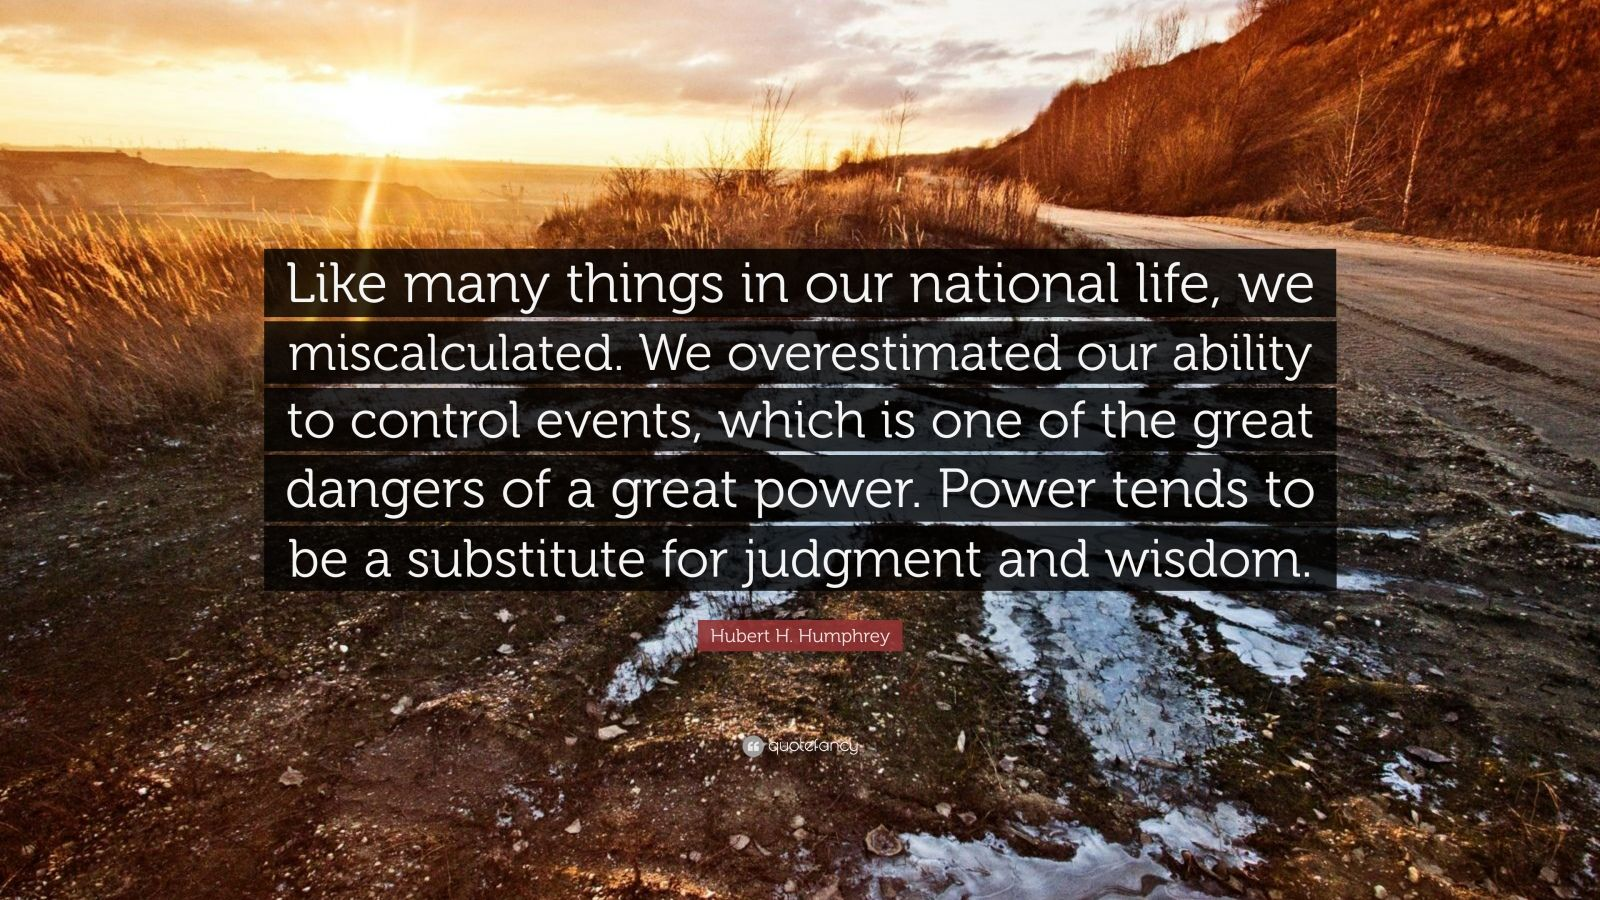 """Hubert H. Humphrey Quote: """"Like many things in our national life, we miscalculated. We overestimated our ability to control events, which is one of the great dangers of a great power. Power tends to be a substitute for judgment and wisdom."""""""